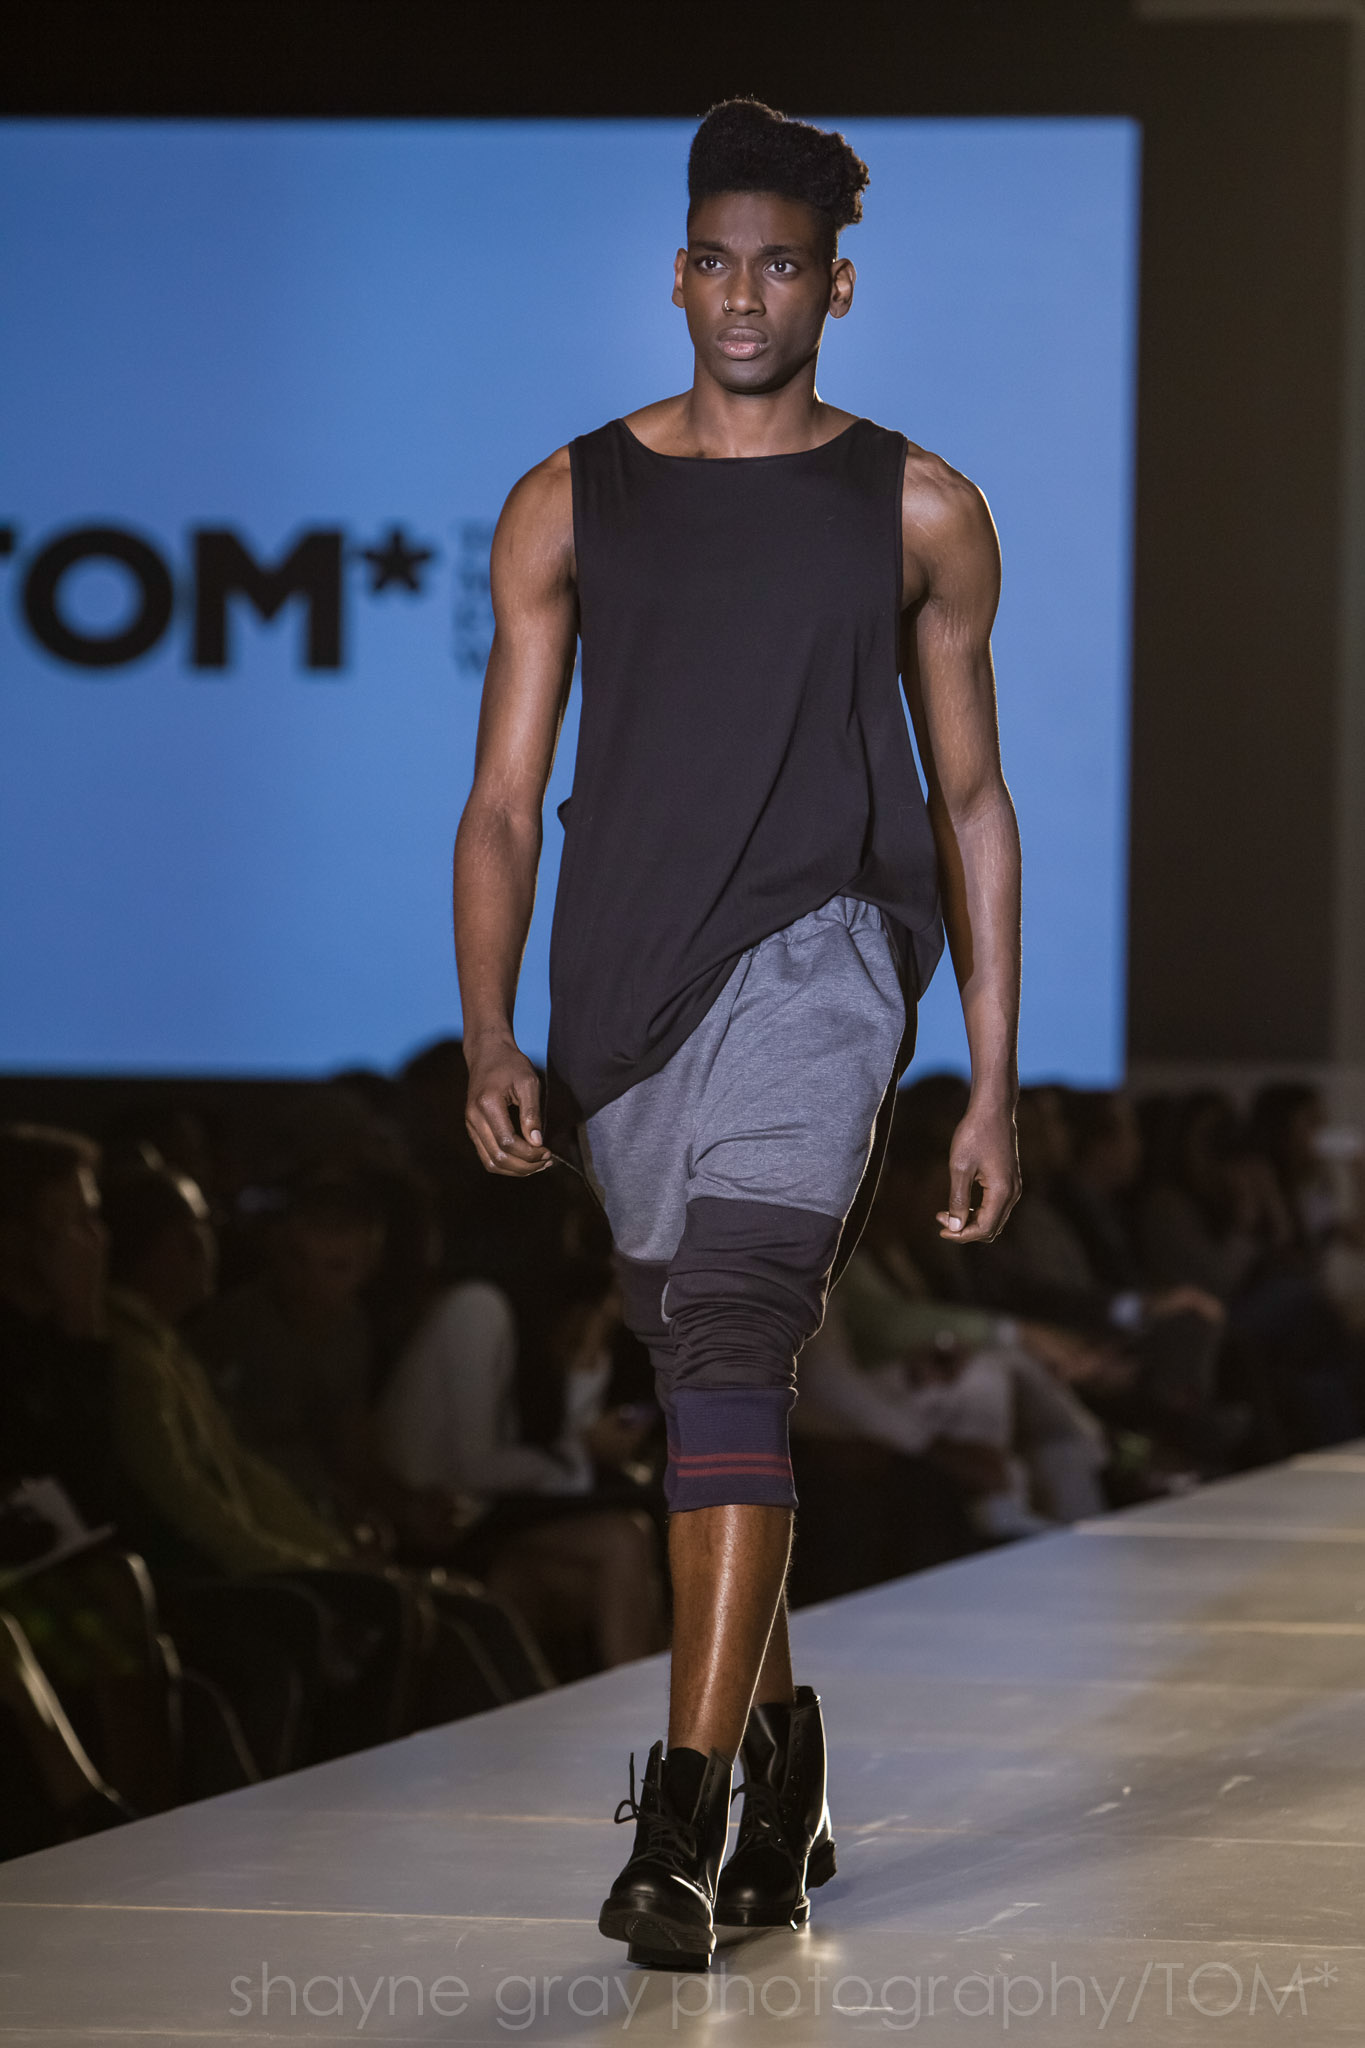 Shayne-Gray-Toronto-men's-fashion_week-TOM-worth-by-david-c-wigley-6345.jpg